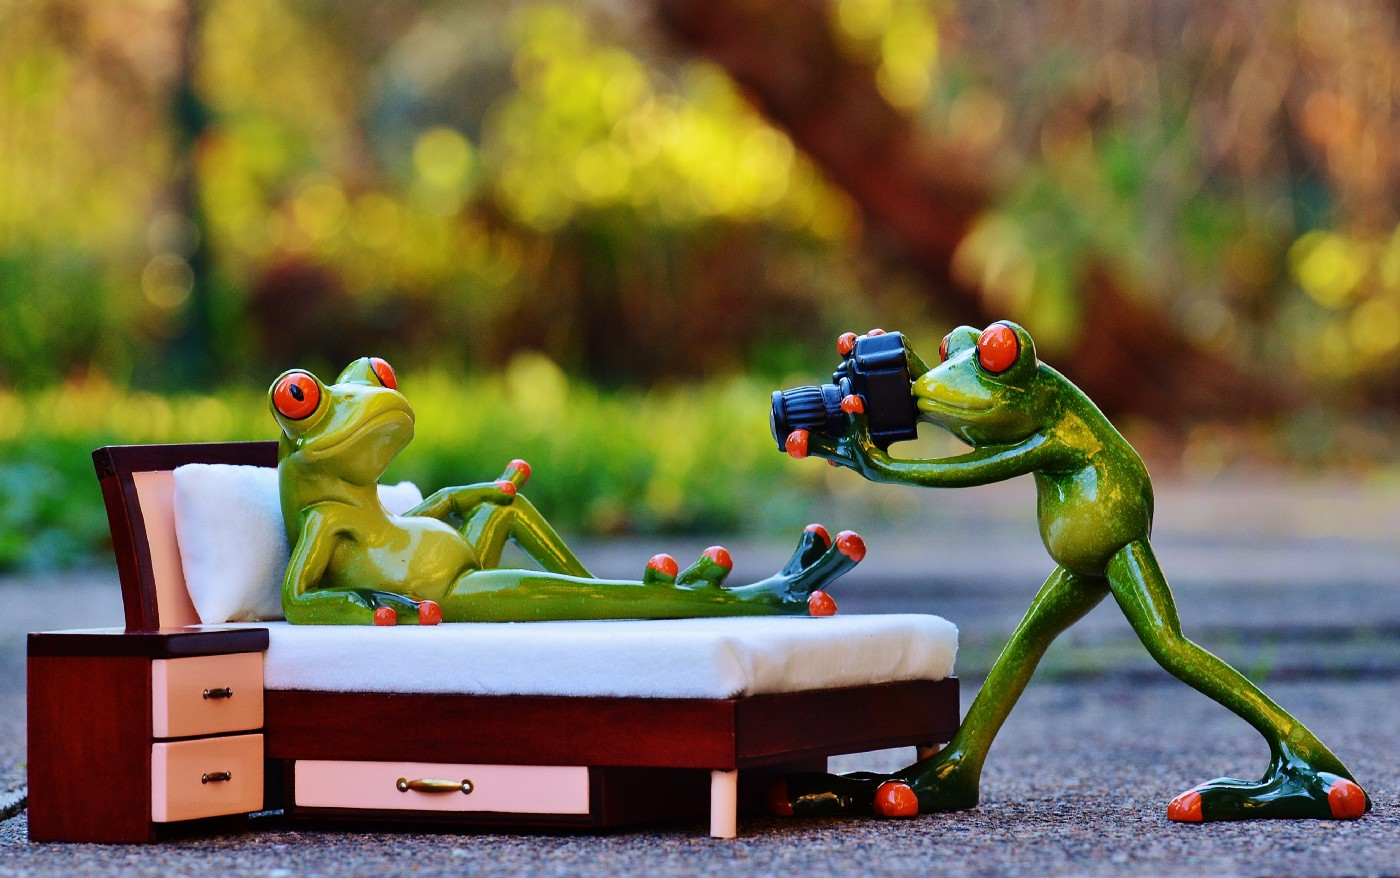 A whimsically humorous green ceramic frog photographs his ceramic frog partner as she reclines on her bed.